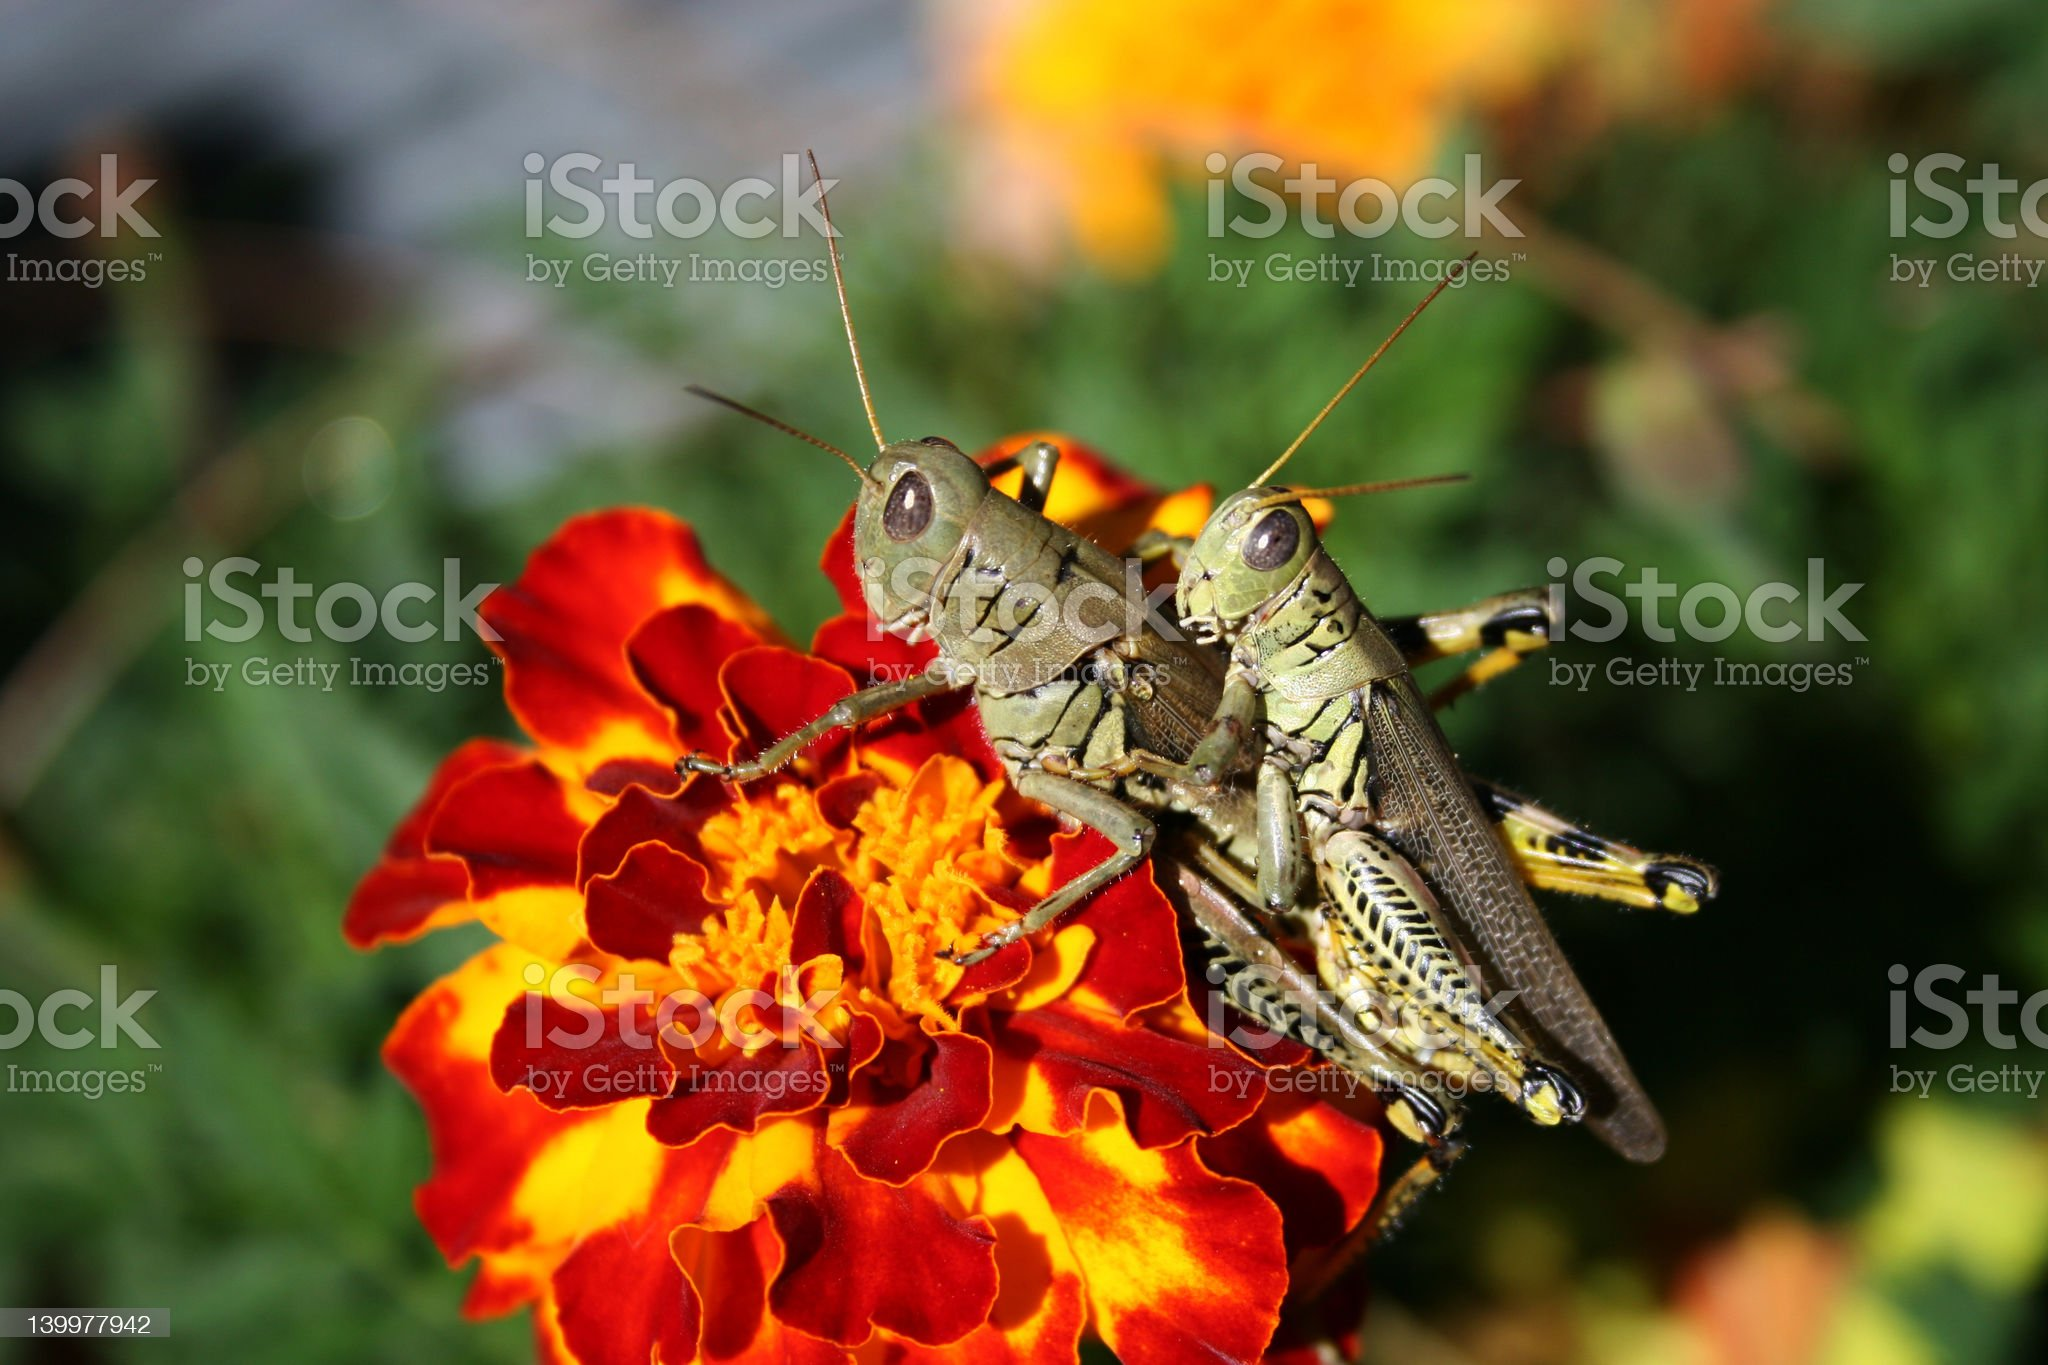 Get off my back! royalty-free stock photo